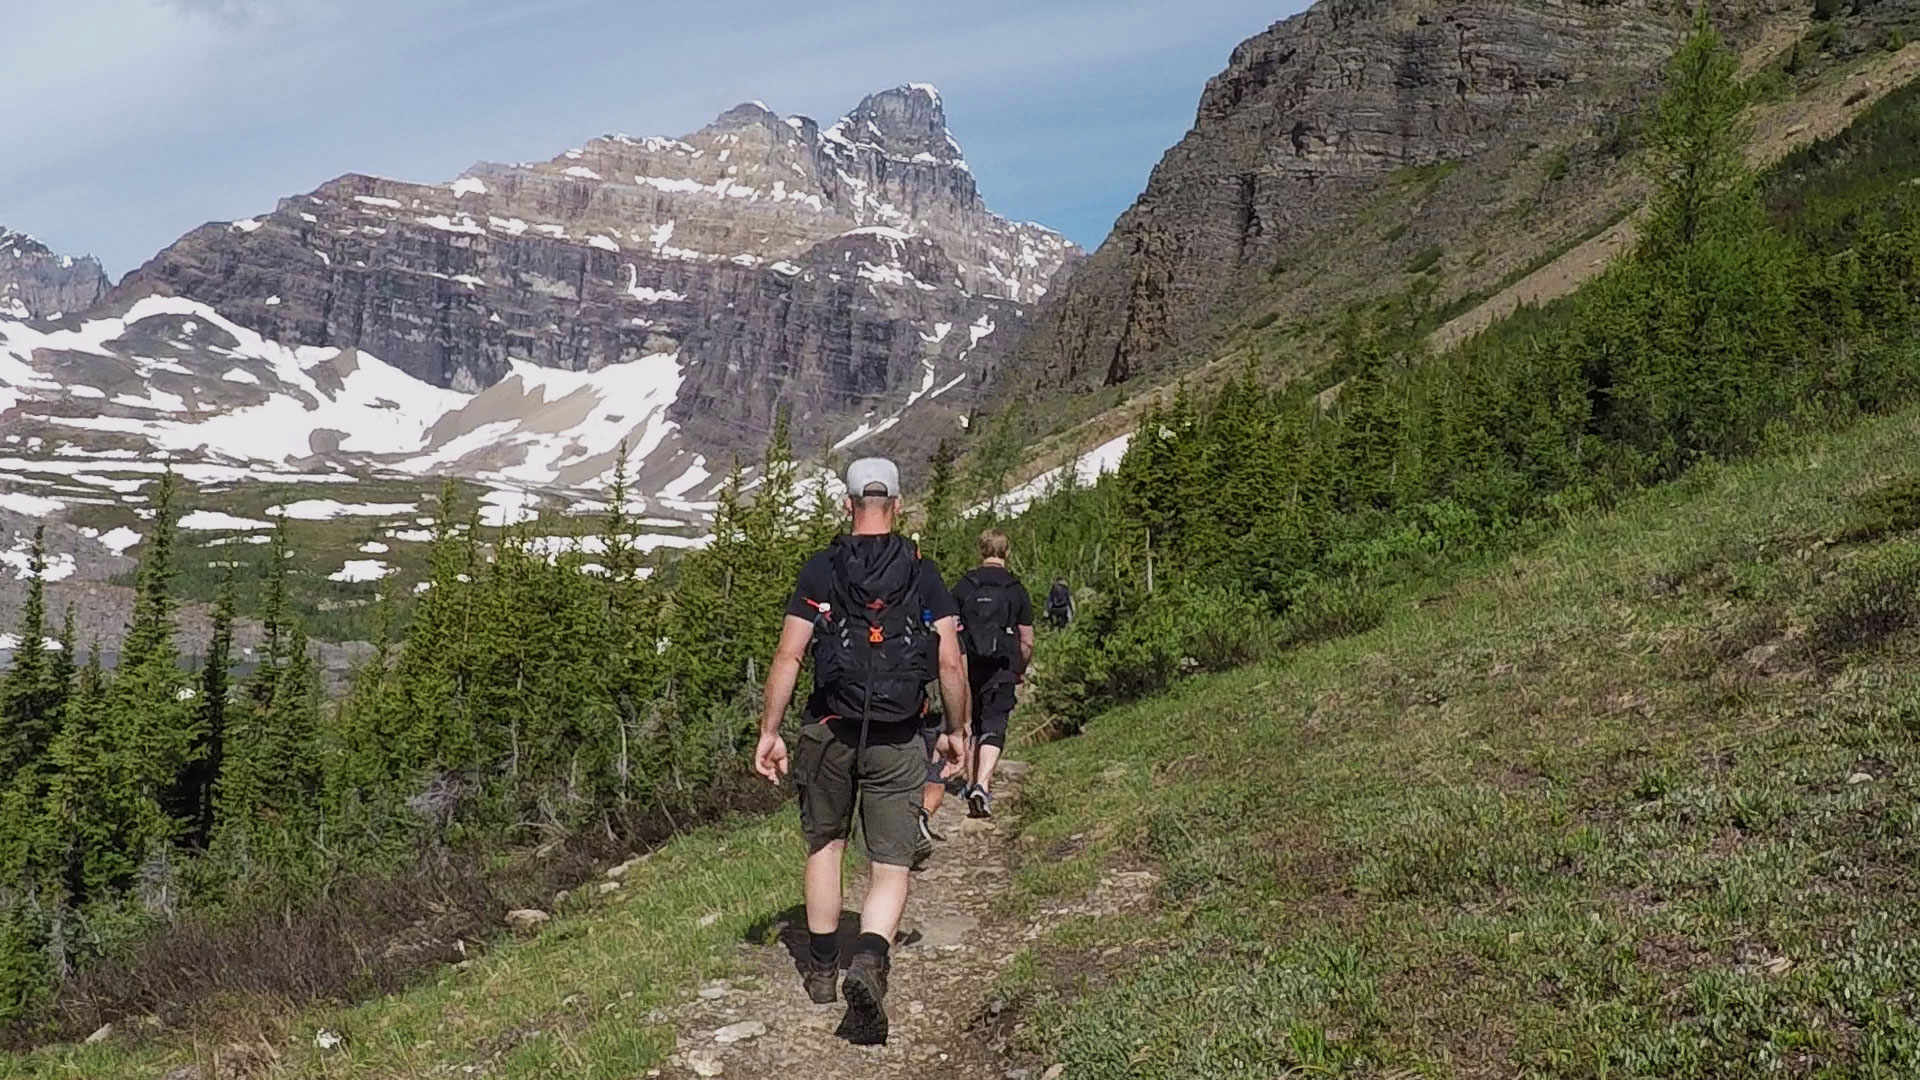 Hiking on a guided tour of the Rockies.